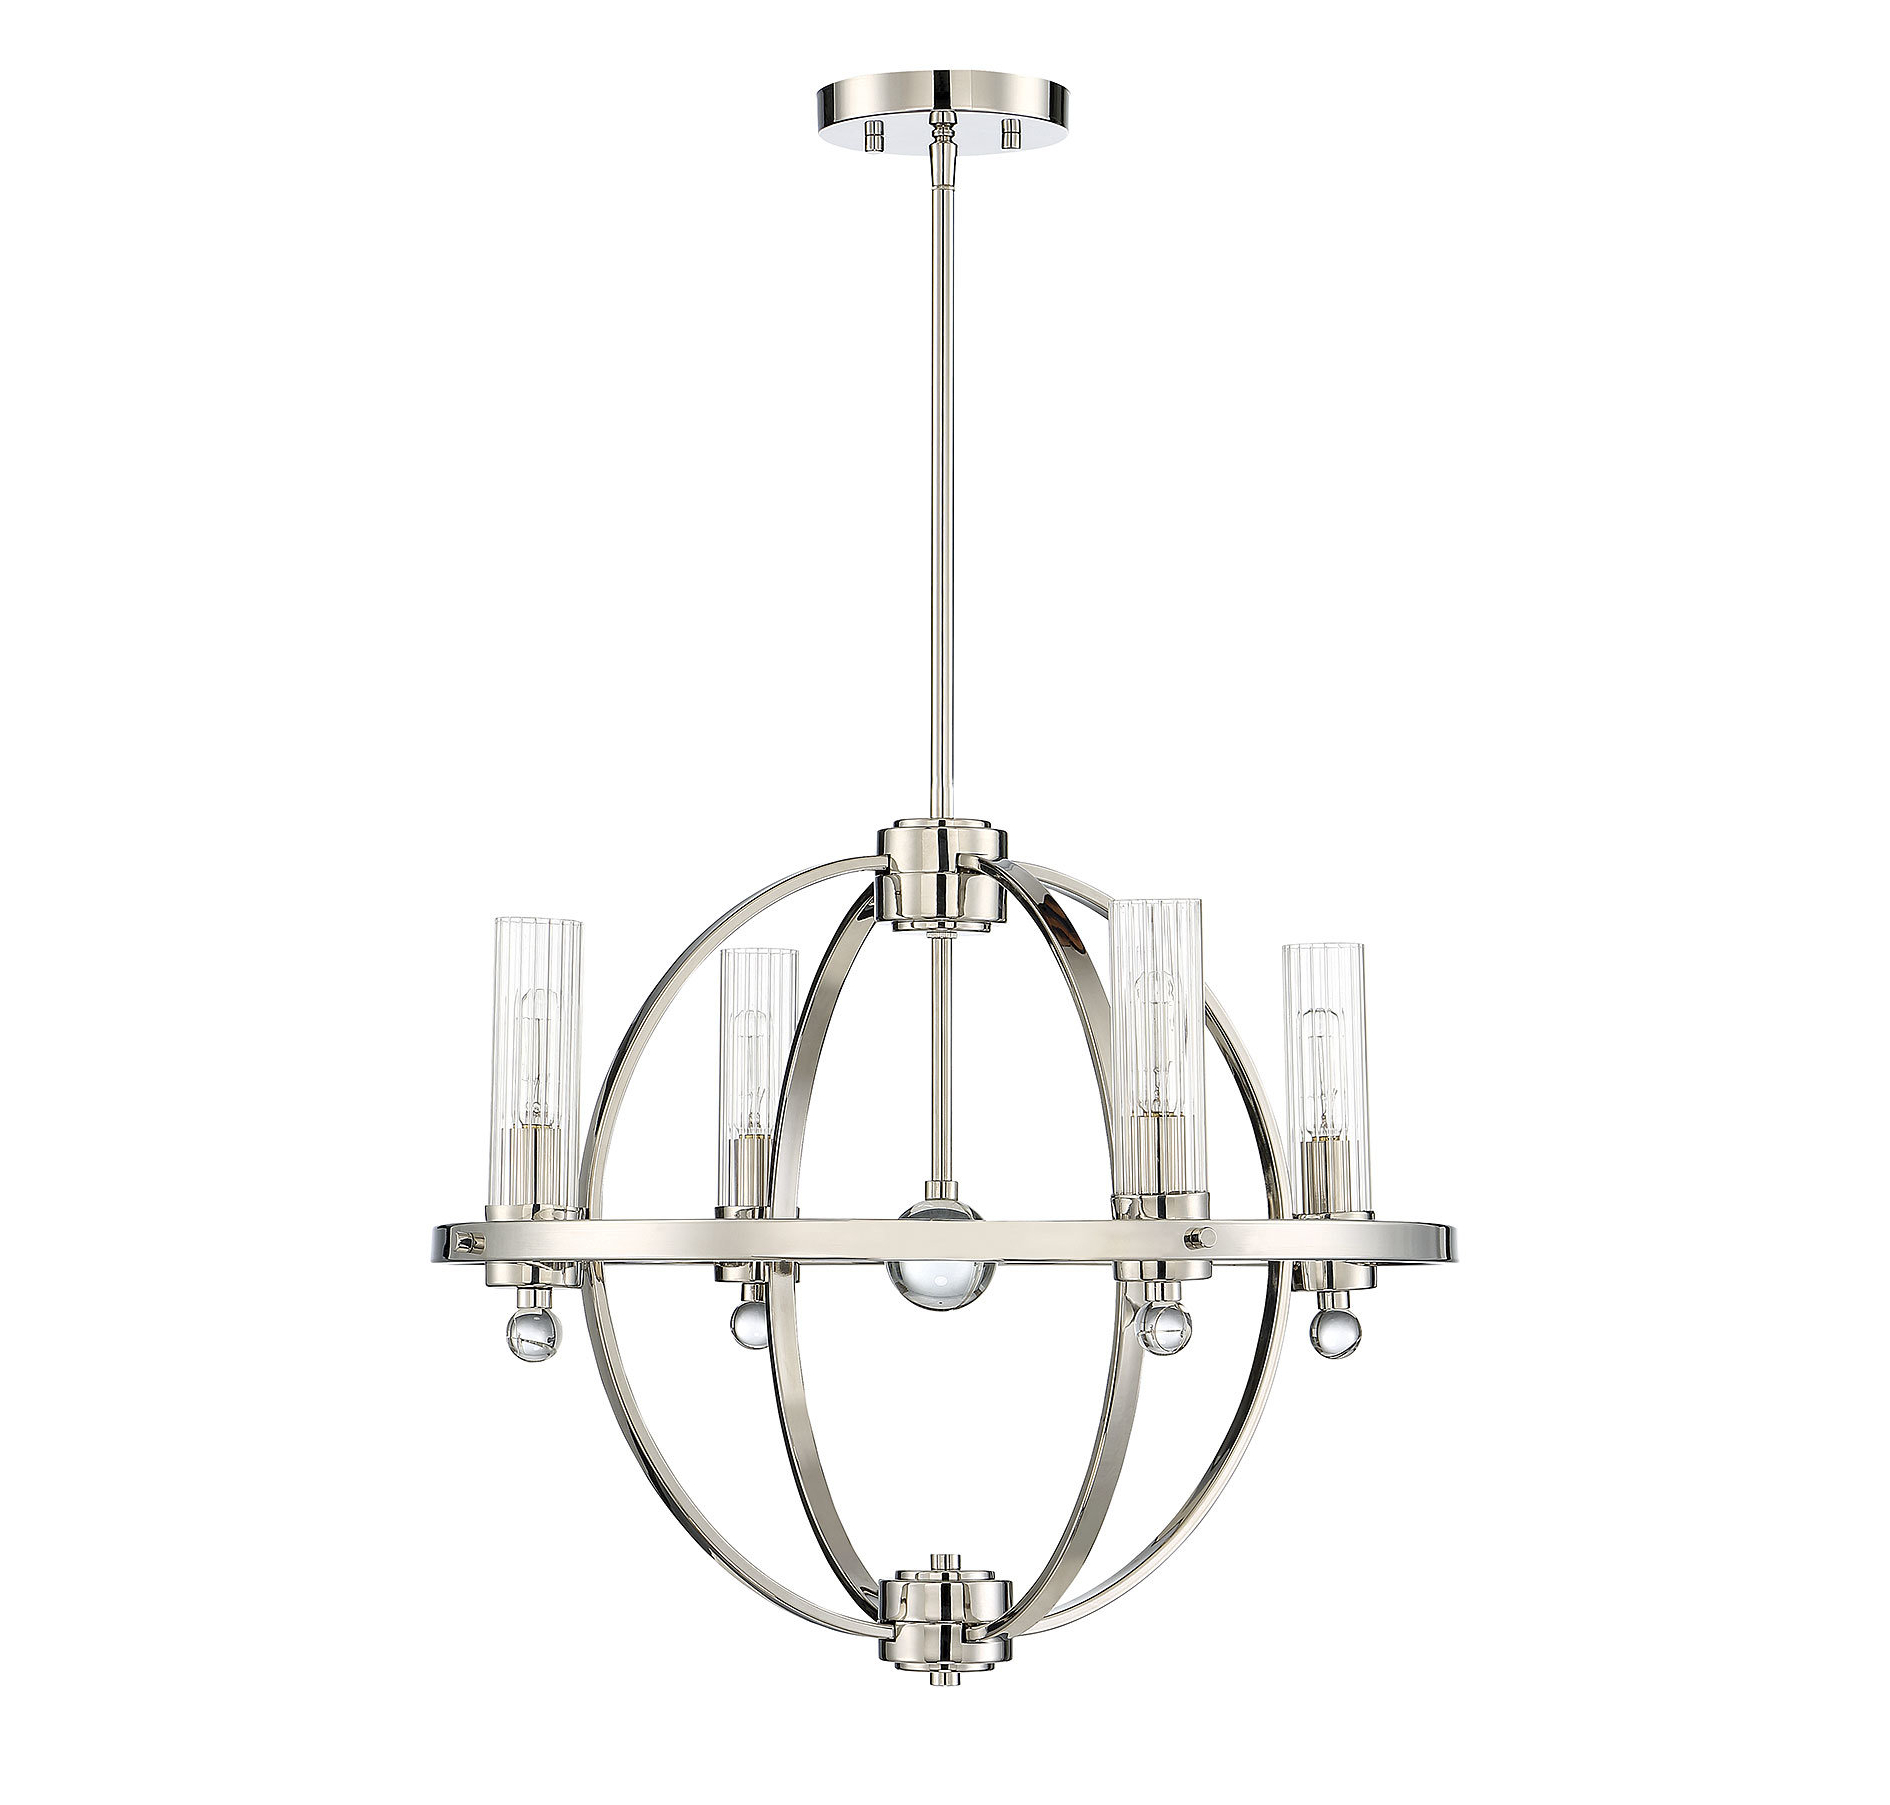 Madrigal 4 Light Globe Chandelier Intended For Most Recent Gregoire 6 Light Globe Chandeliers (Gallery 20 of 20)